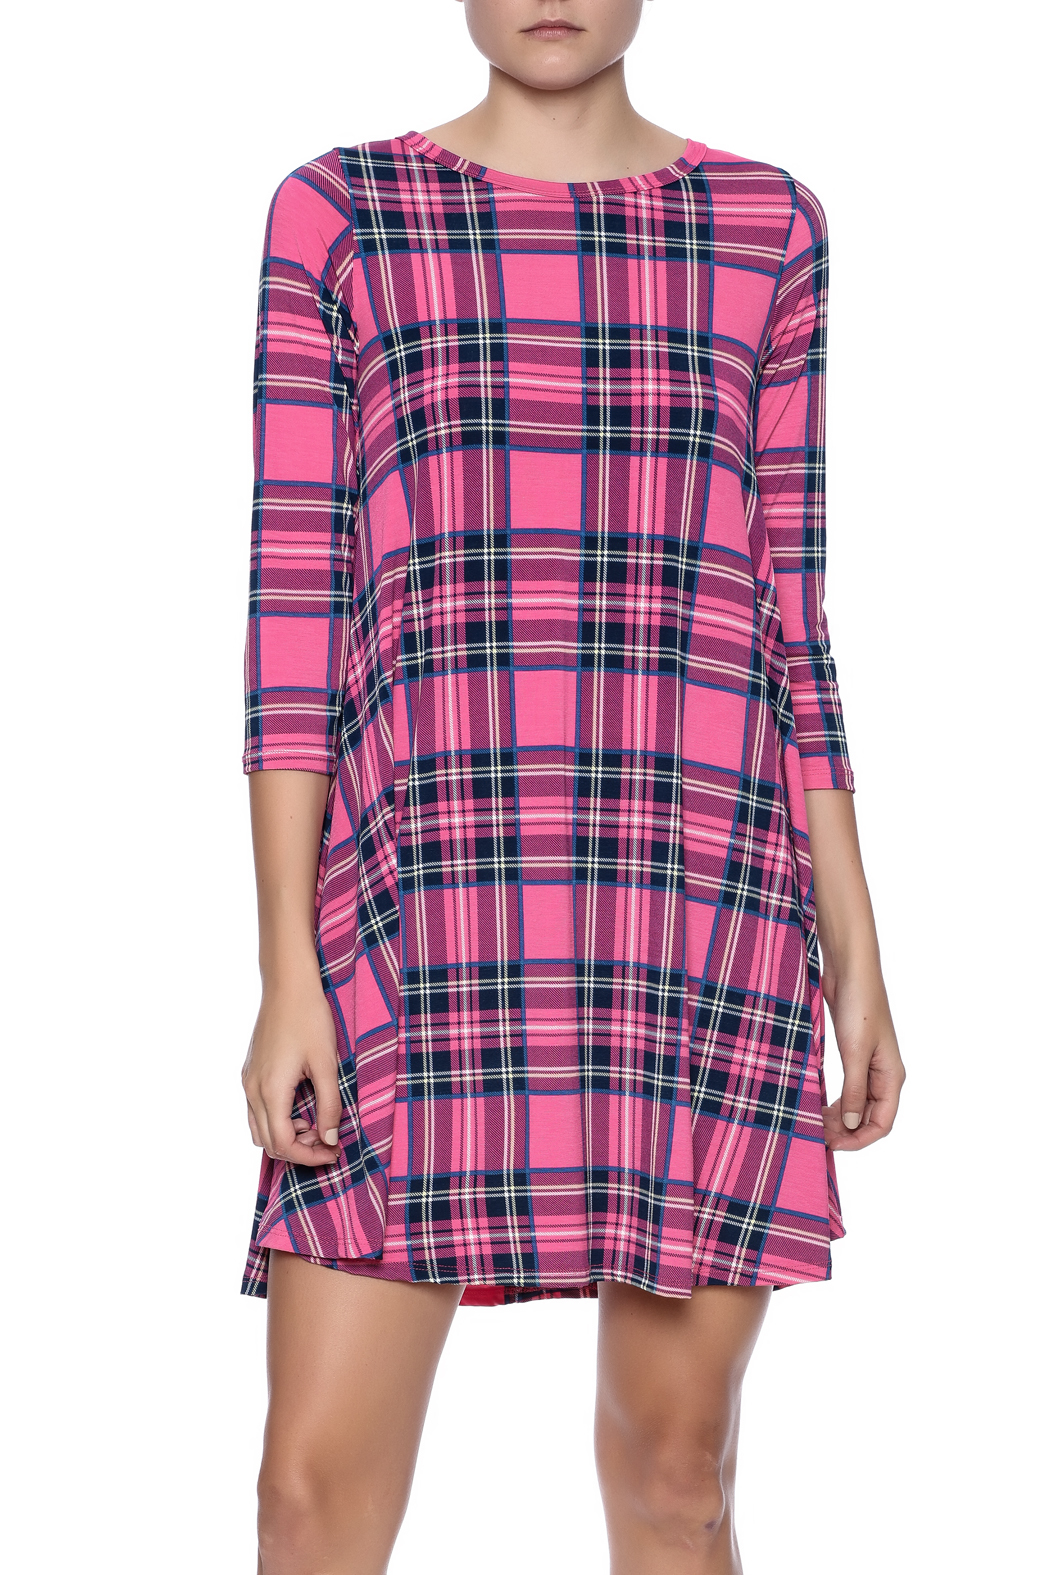 Bellamie Pink Plaid Dress from Arkansas by Vintage Glam and Junque ...